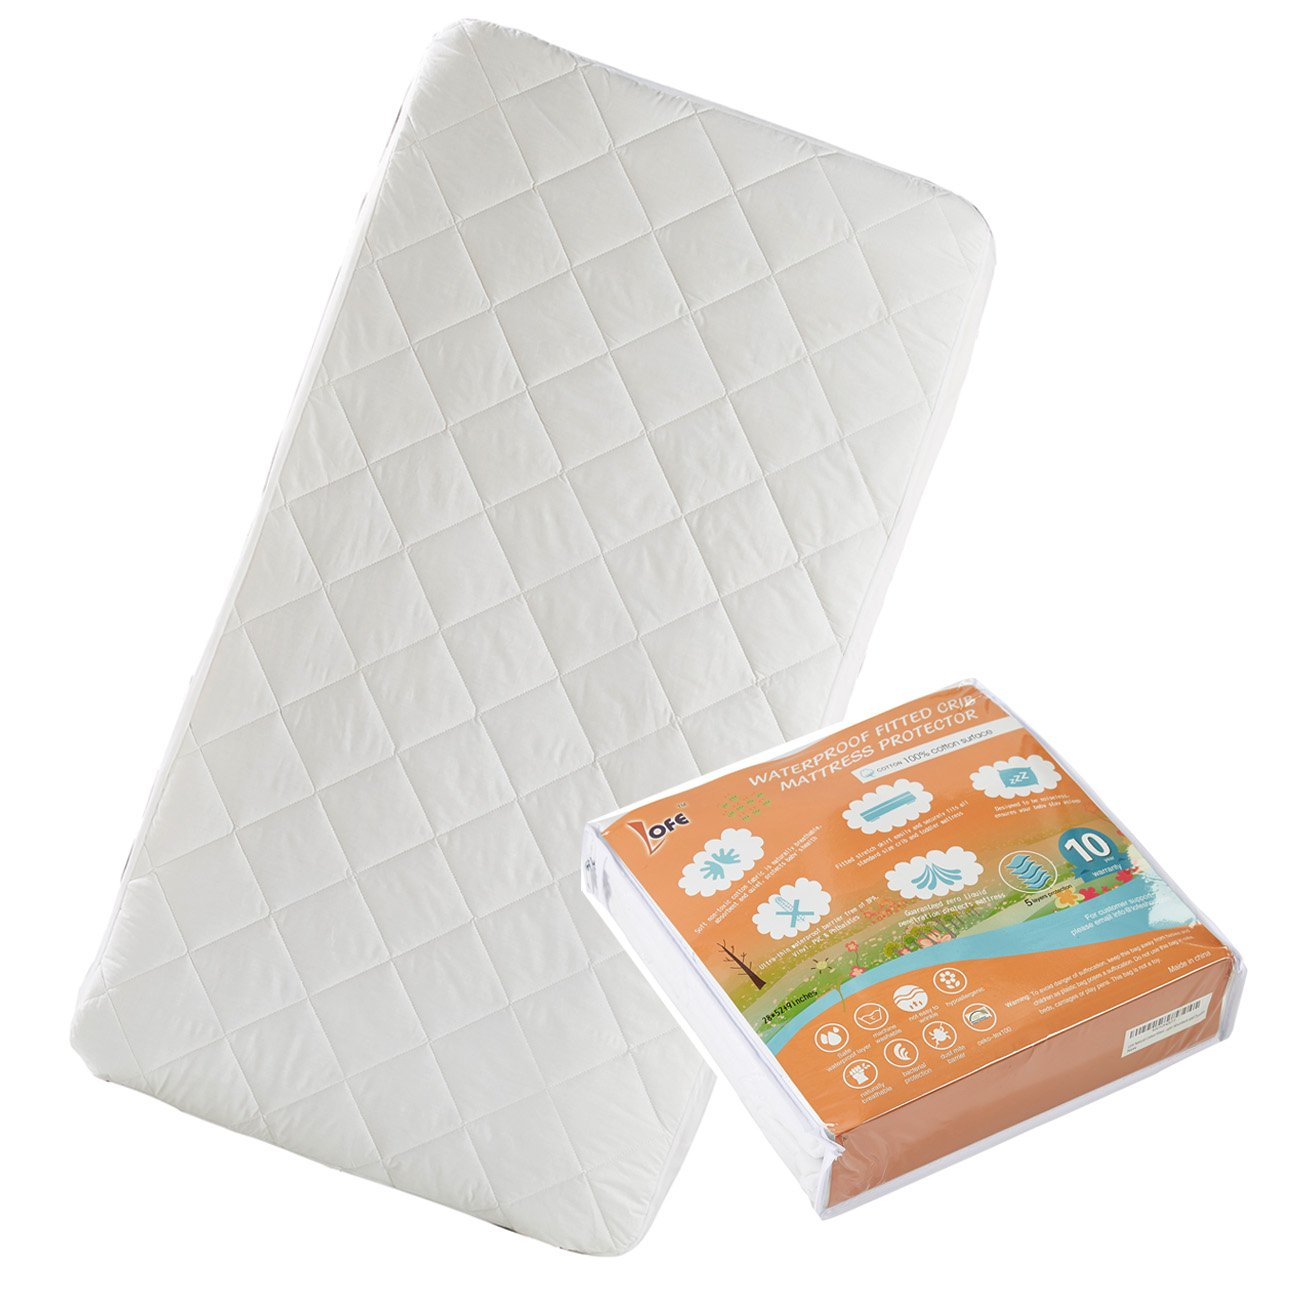 Lofe Cotton Fitted Crib Mattress Protector Waterproof - Infant Breathable Crib Mattress Pad - Toddler Baby Crib Mattress Cover28x52